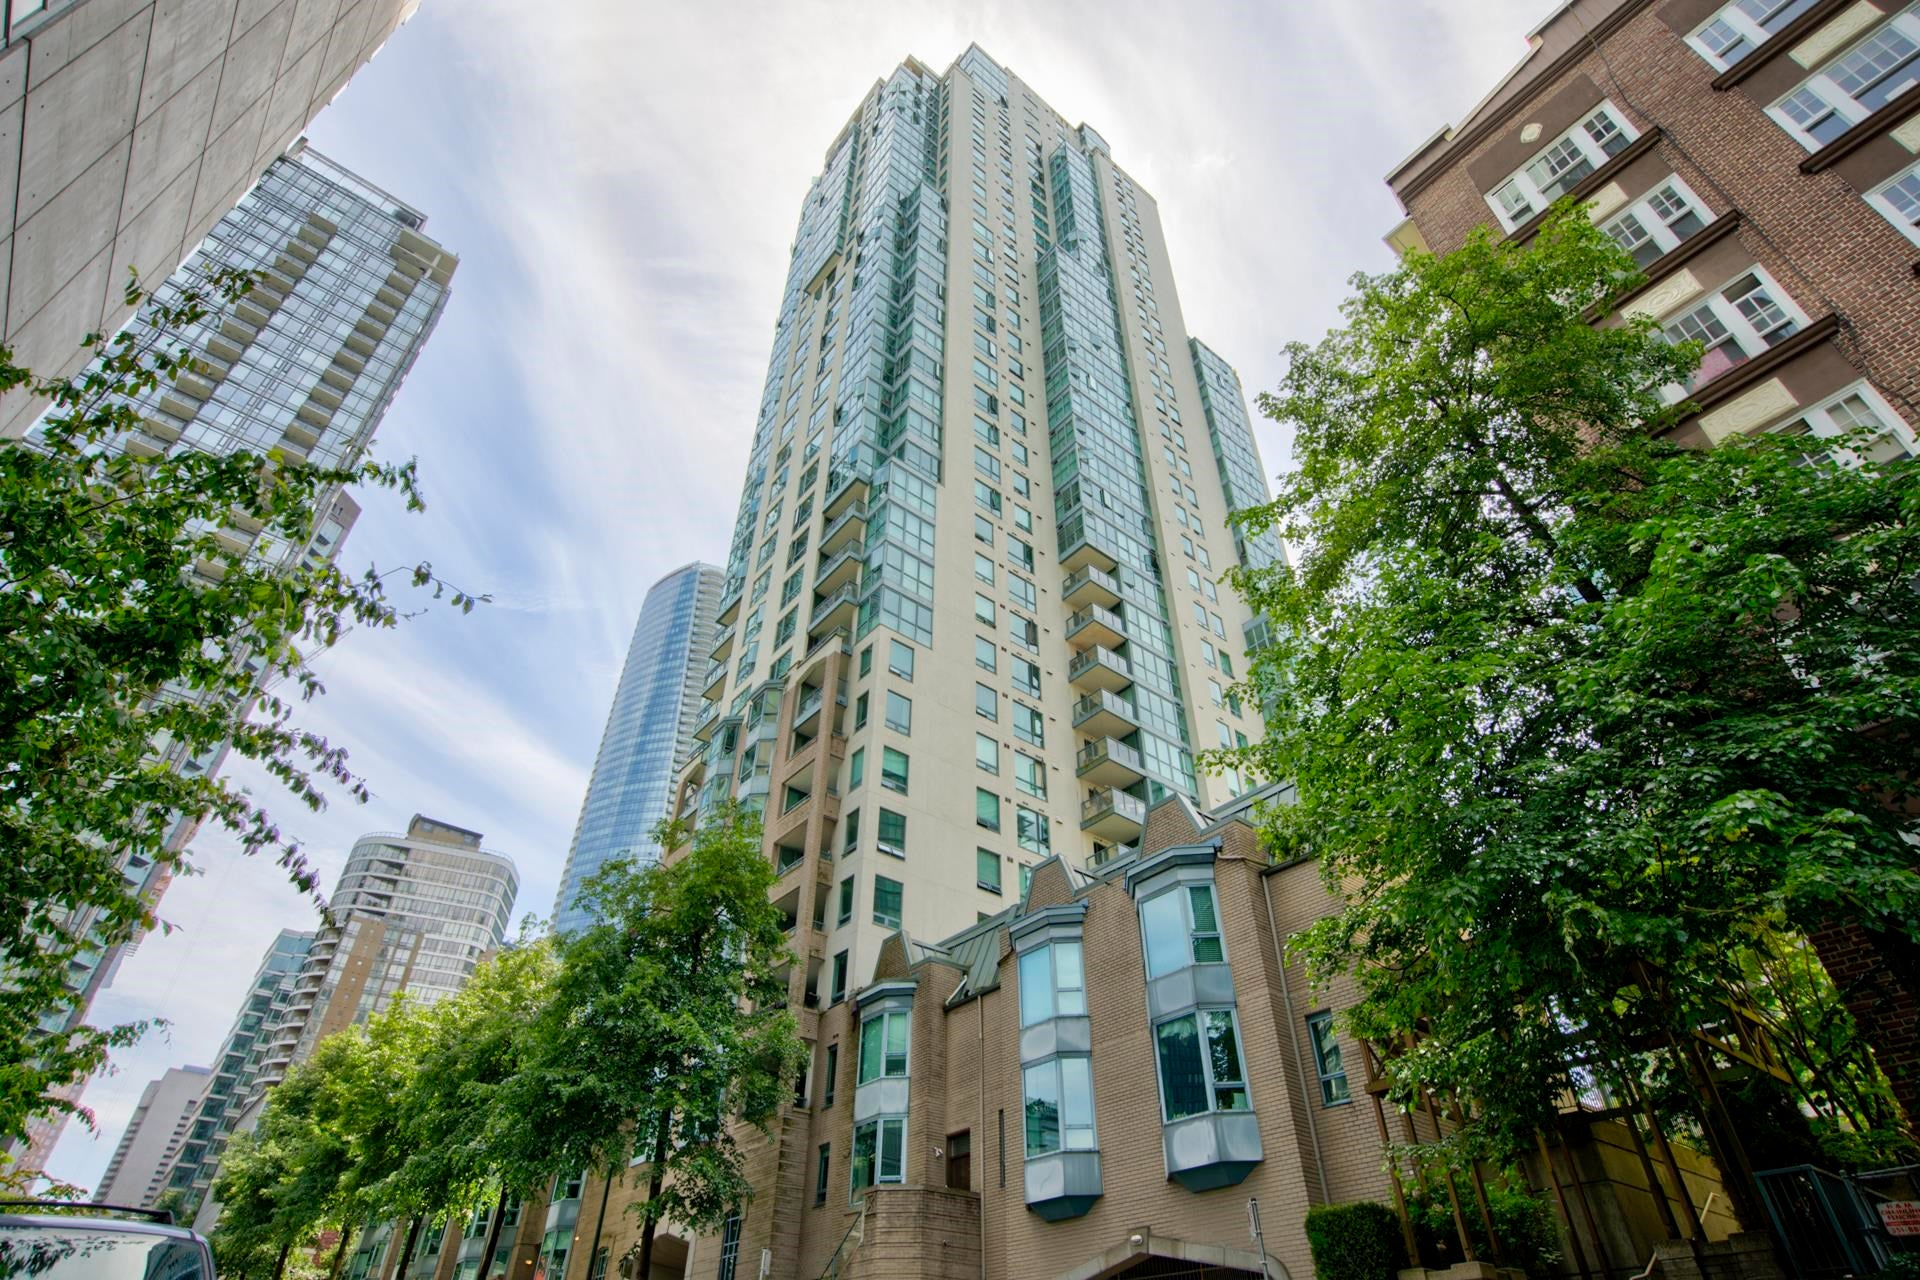 1903 1238 MELVILLE STREET - Coal Harbour Apartment/Condo for sale, 3 Bedrooms (R2623127)